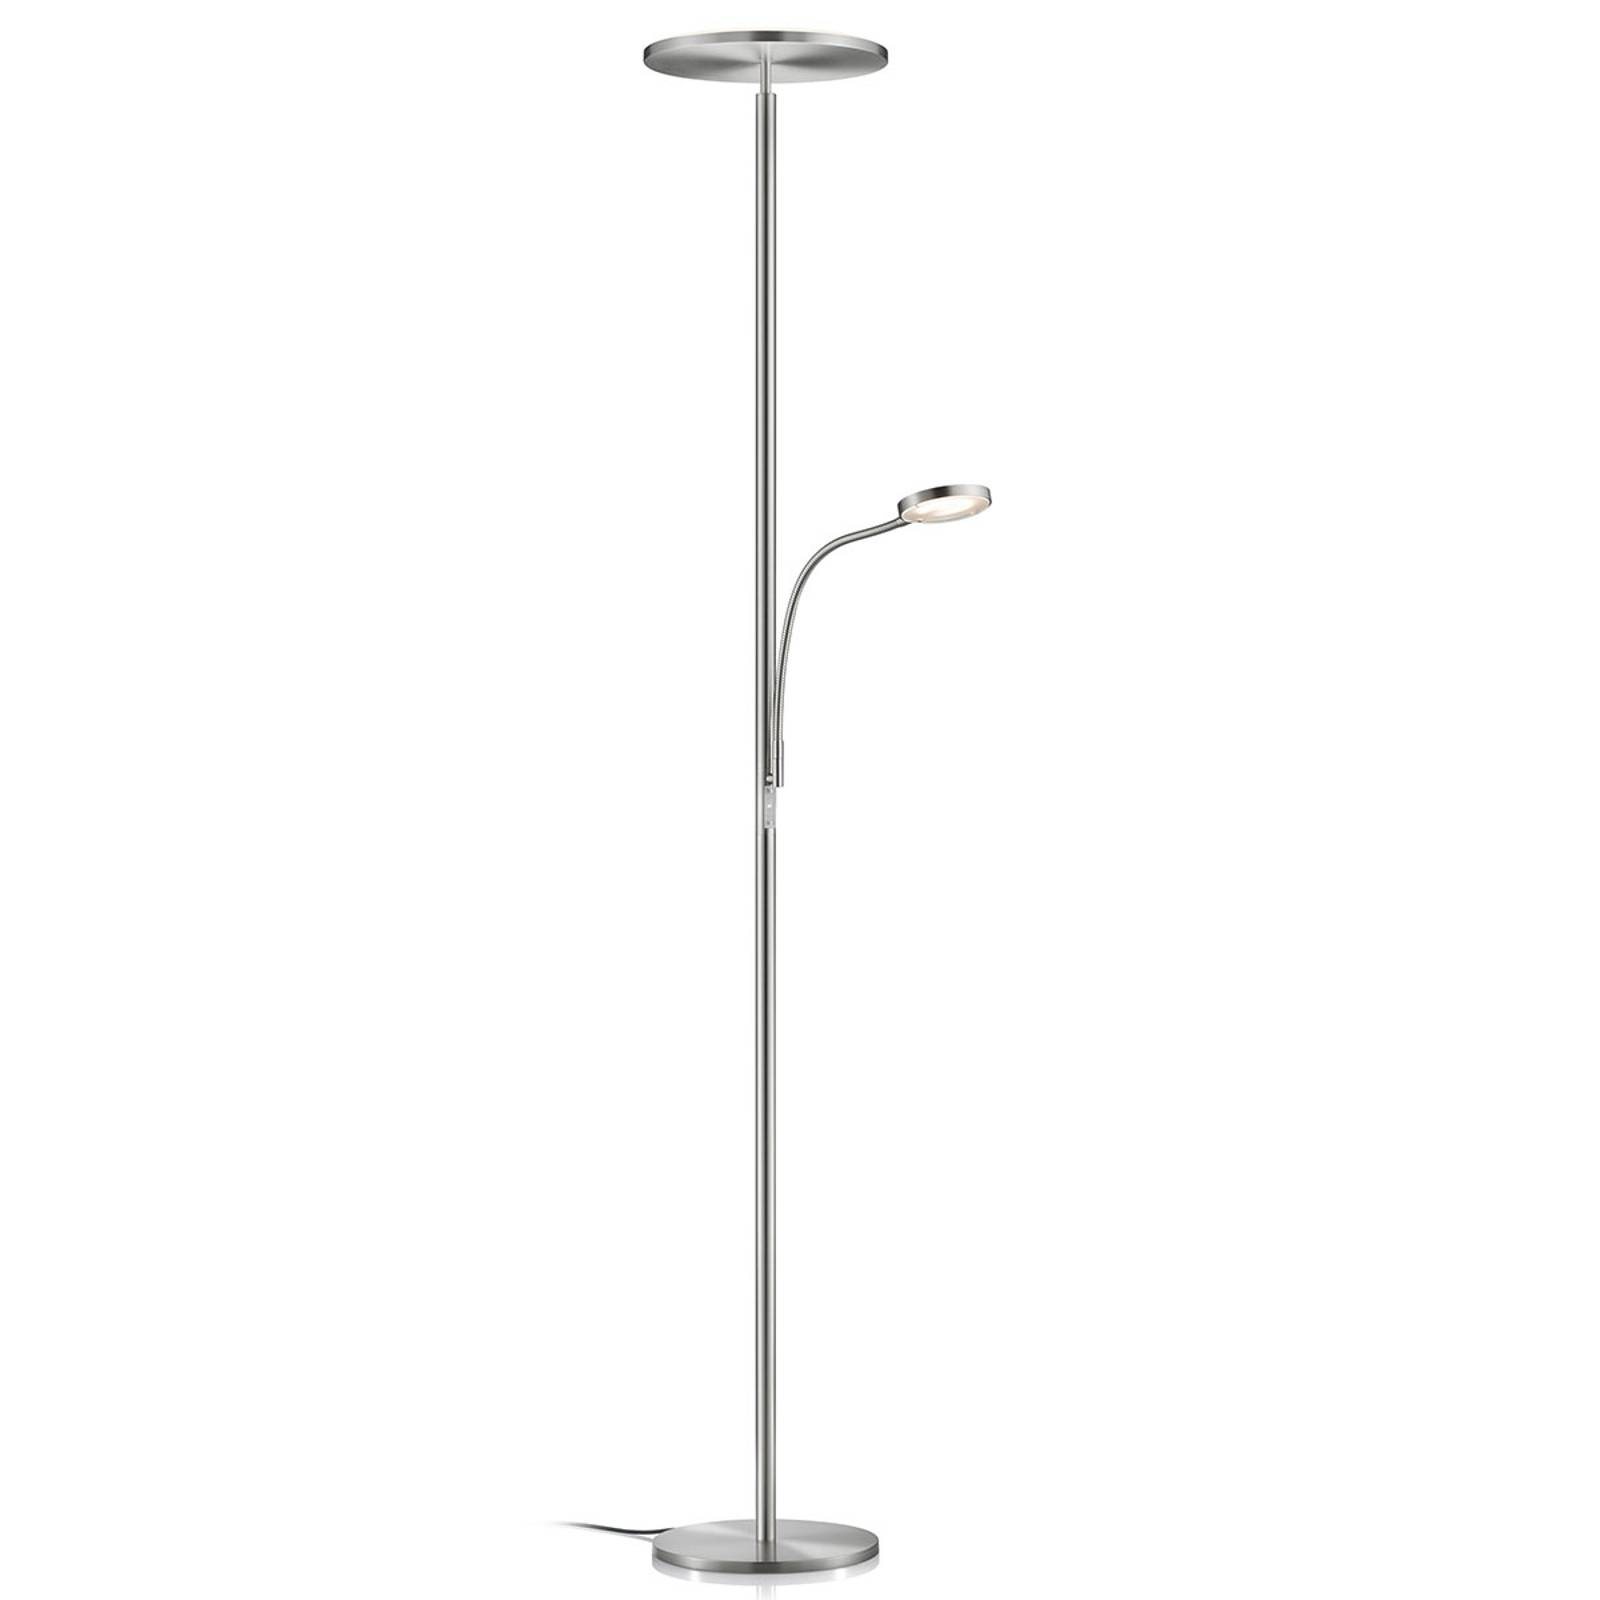 Lampadaire indirect LED Hadès dimmable liseuse LED